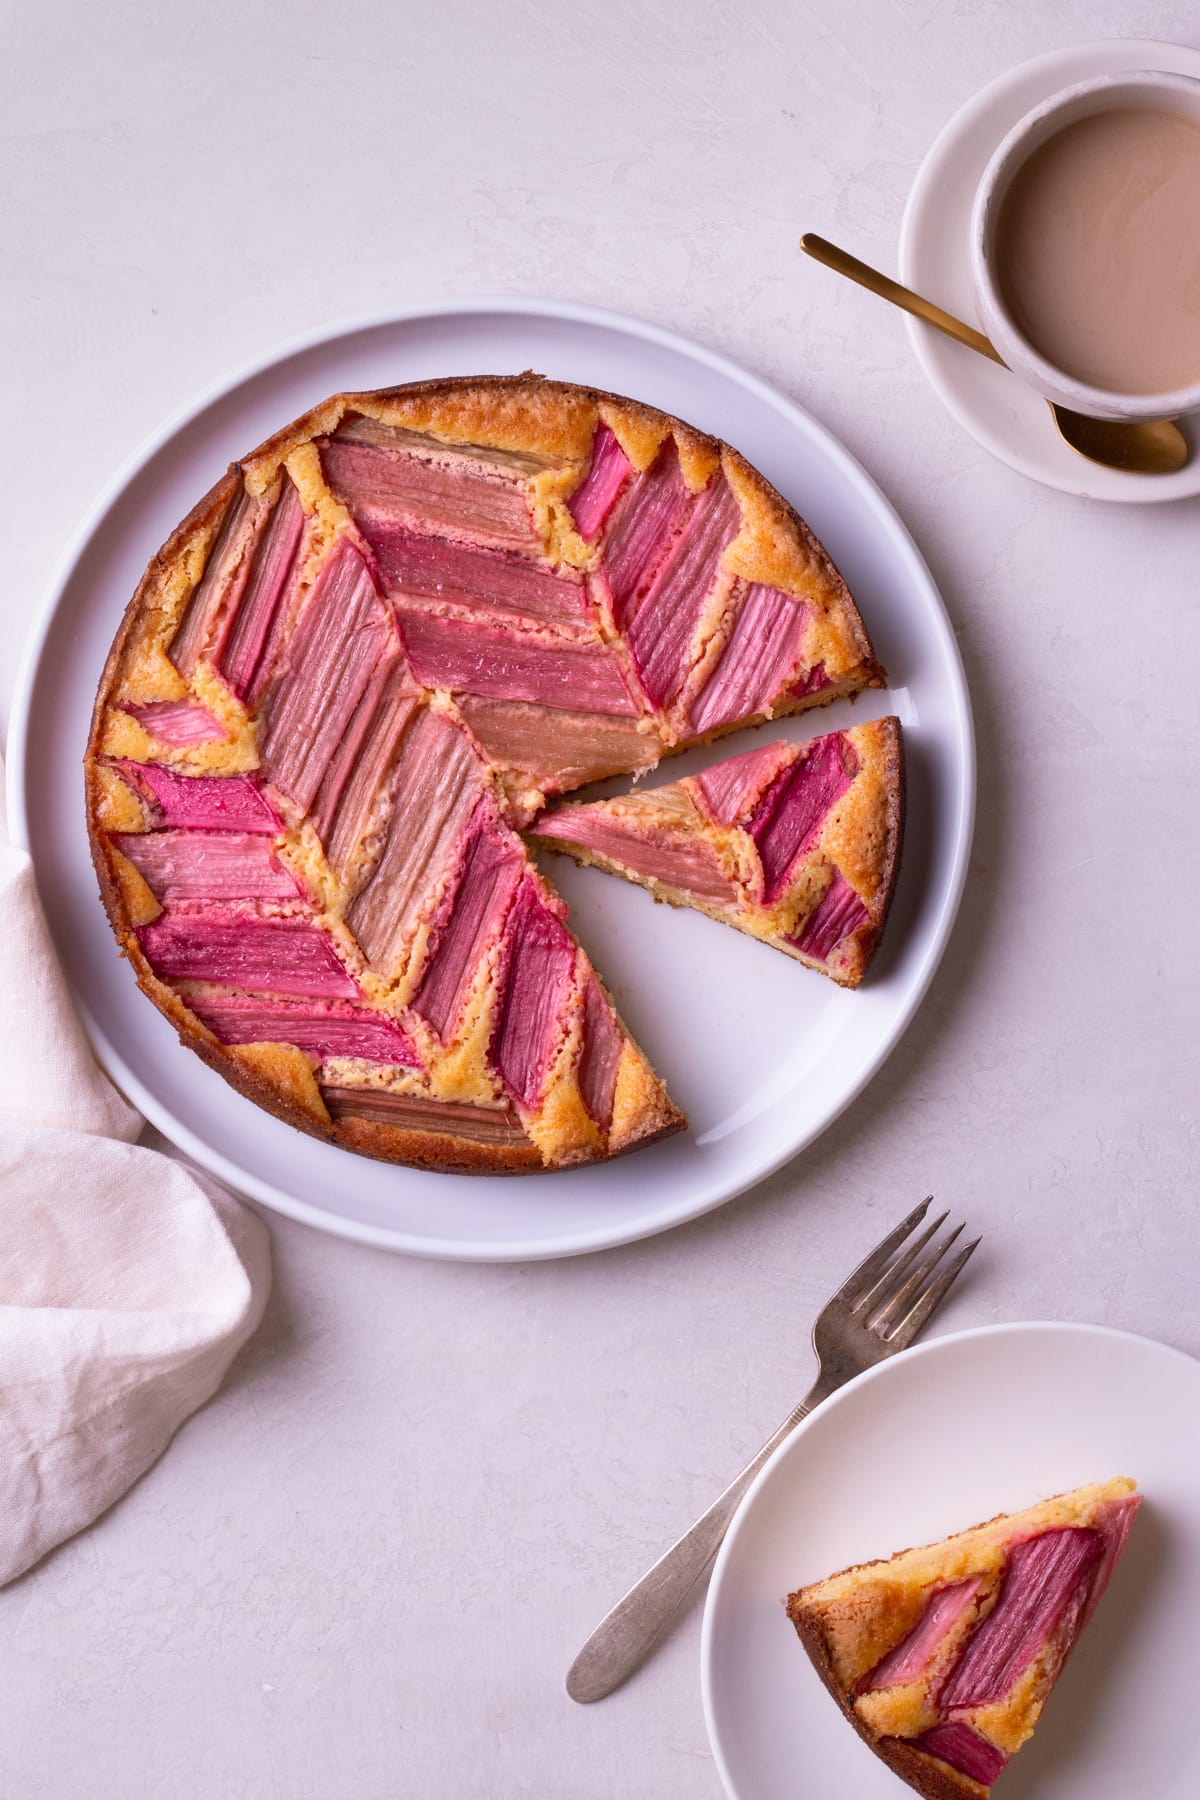 Overhead view of Rhubarb Custard Cake with slices cut out of it on a cream surface surrounded by a cup of coffee and a slice of cake.